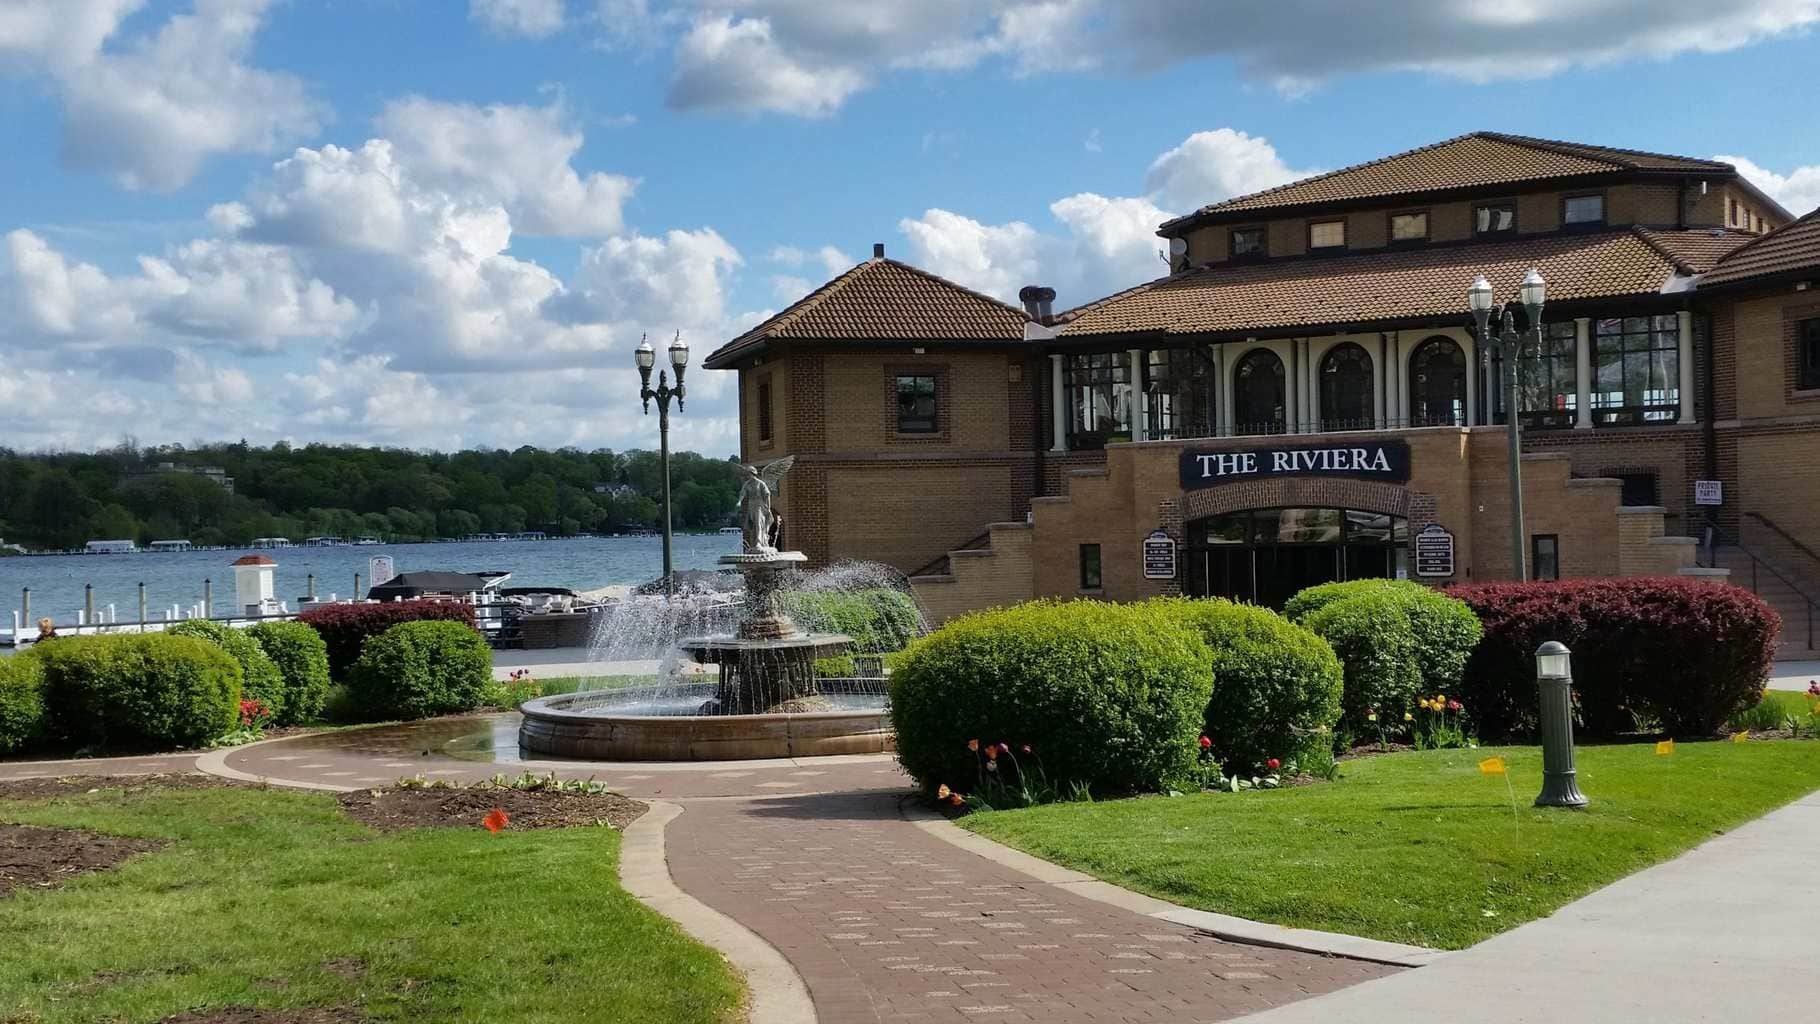 The Riviera in Downtown Lake Geneva, WI